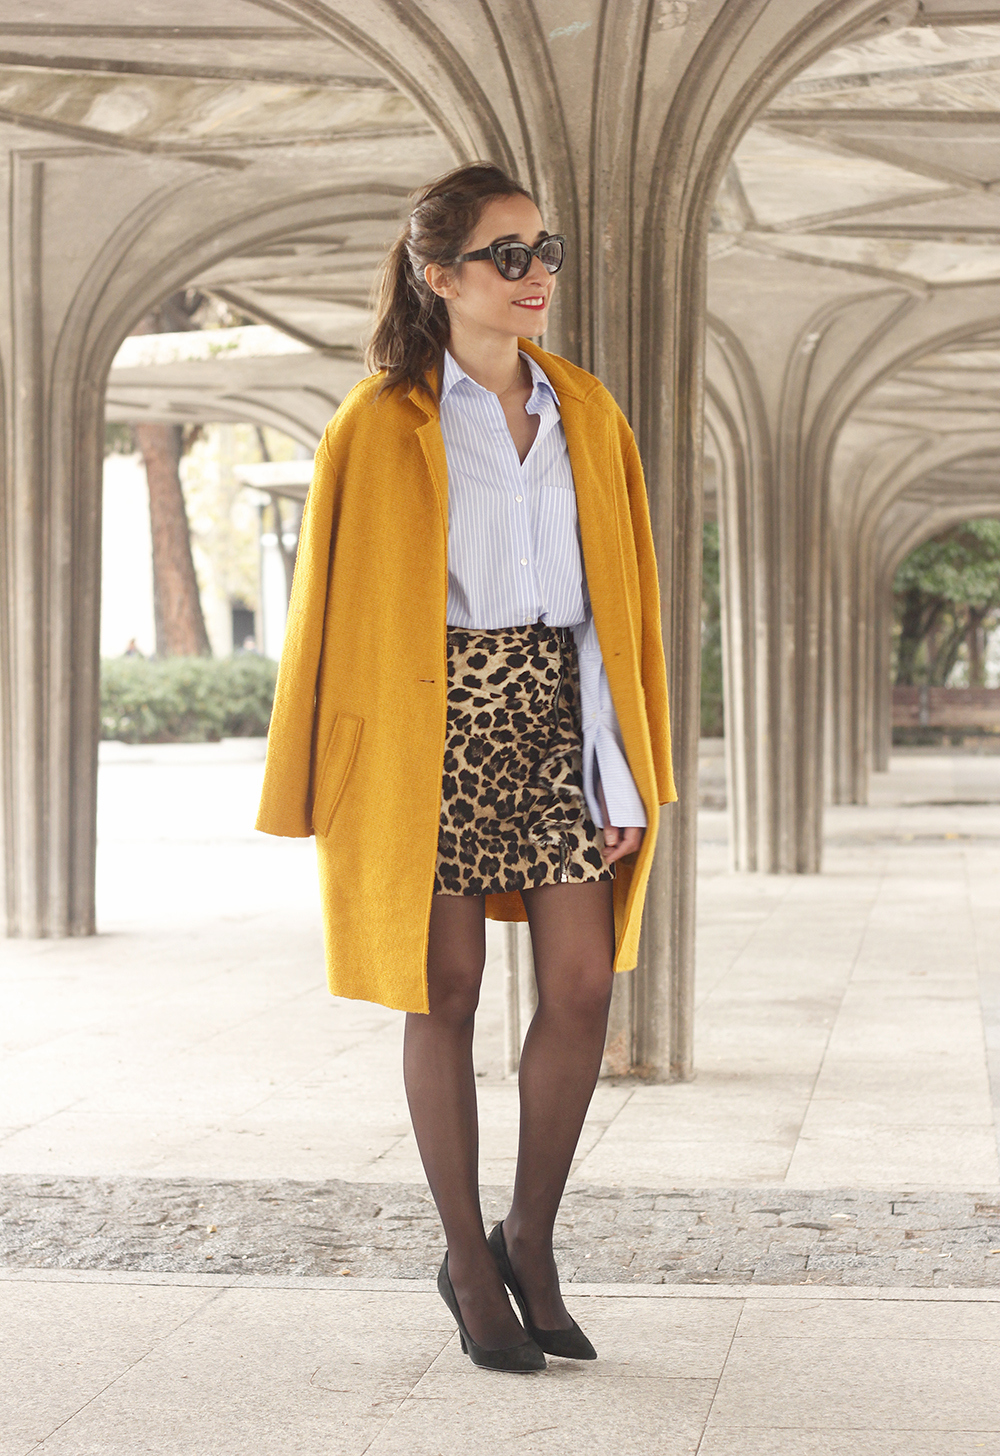 Leopard Skirt striped shirt black heels mustard coat fall outfit style fashion05